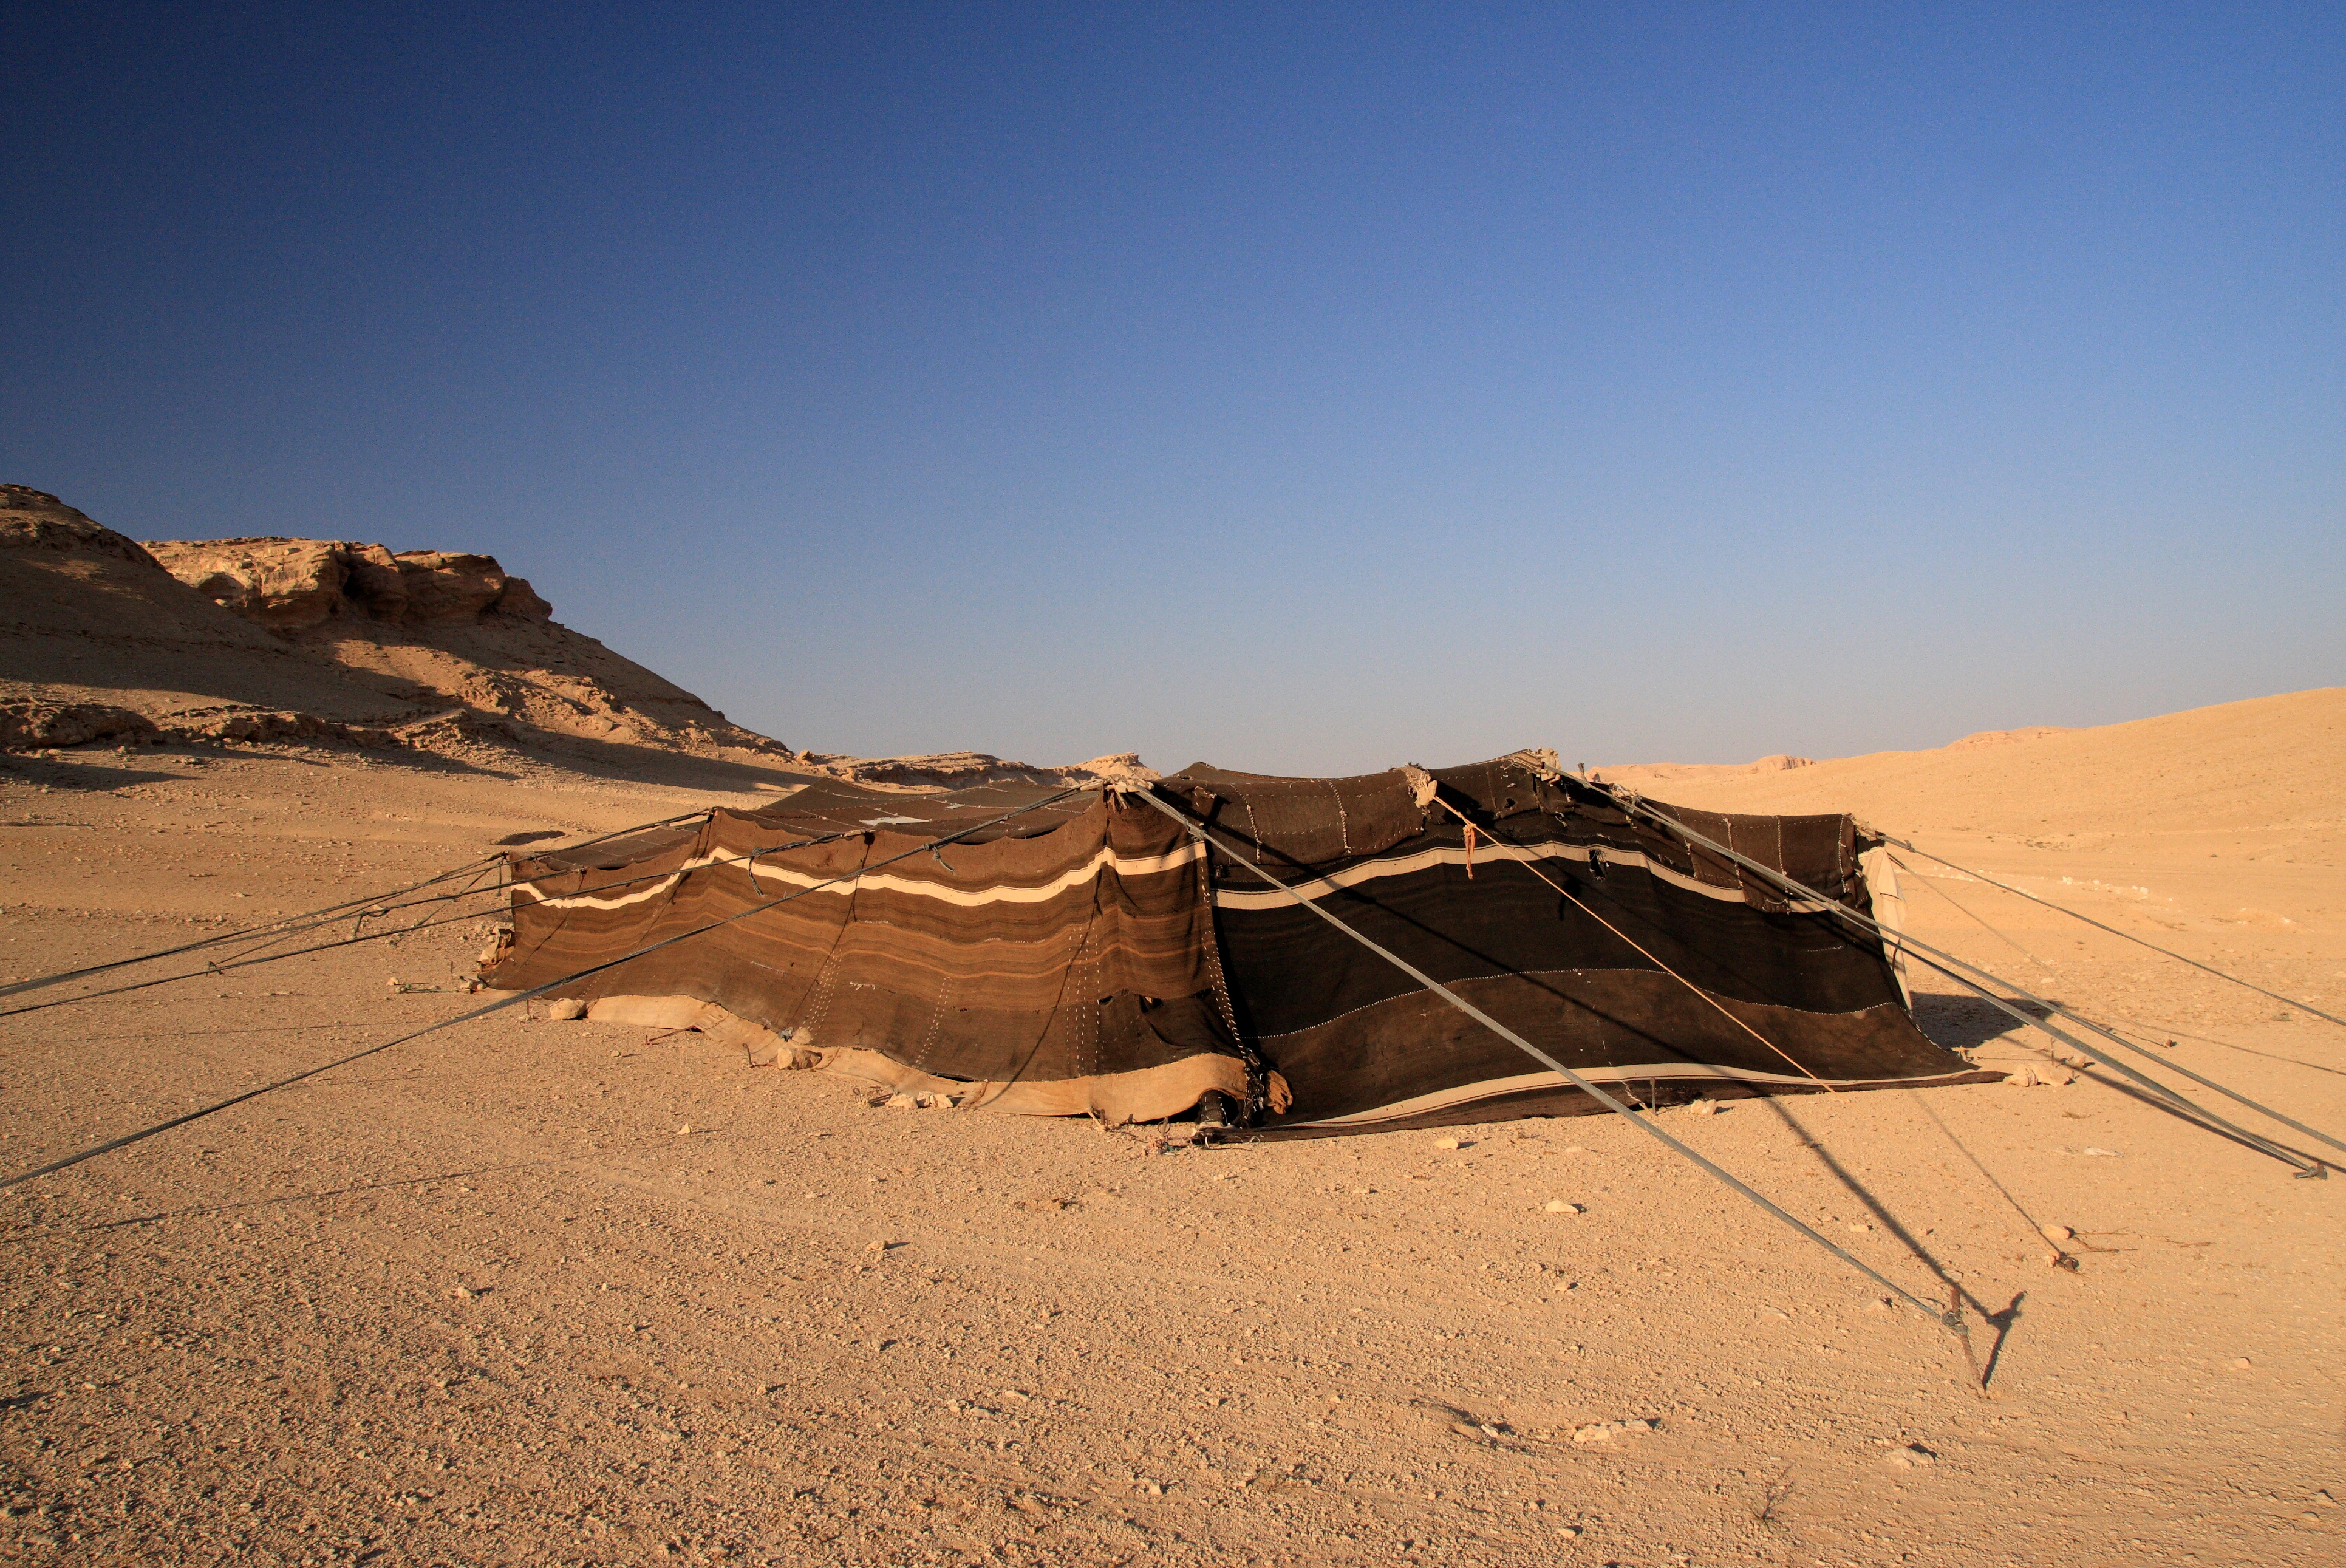 By yeowatzup (Bedouin Tent, Syrian Desert) [CC BY 2.0 (https://creativecommons.org/licenses/by/2.0)], via Wikimedia Commons